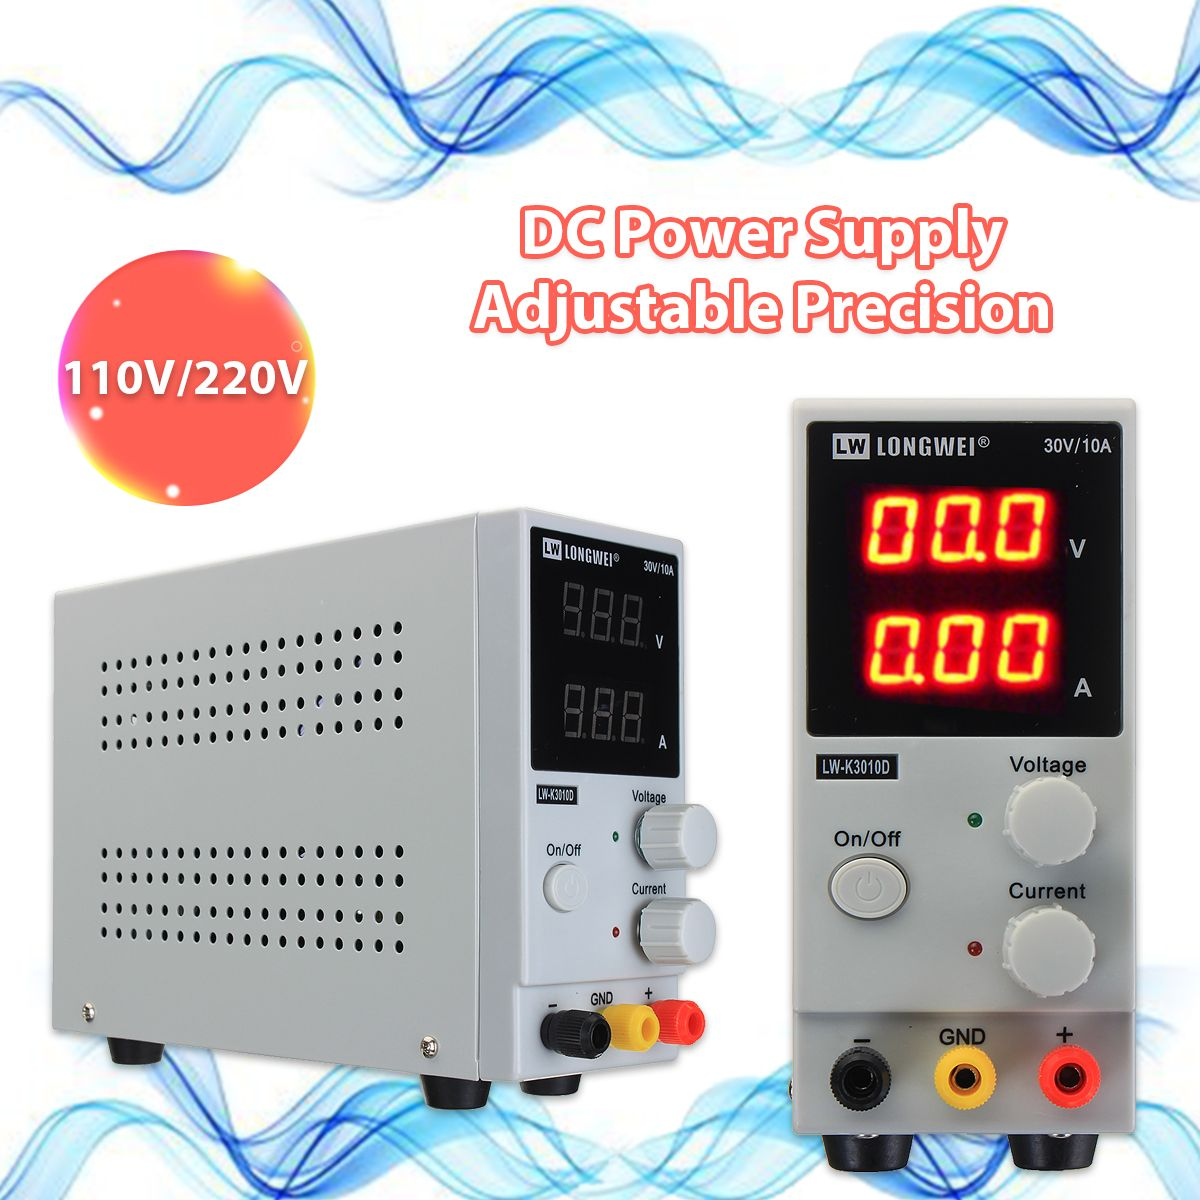 0-10A 0-30V 220V LCD DC Power Supply Variable Adjustable Switching Regulated Power Supply Digital Laboratory Voltage Regulator